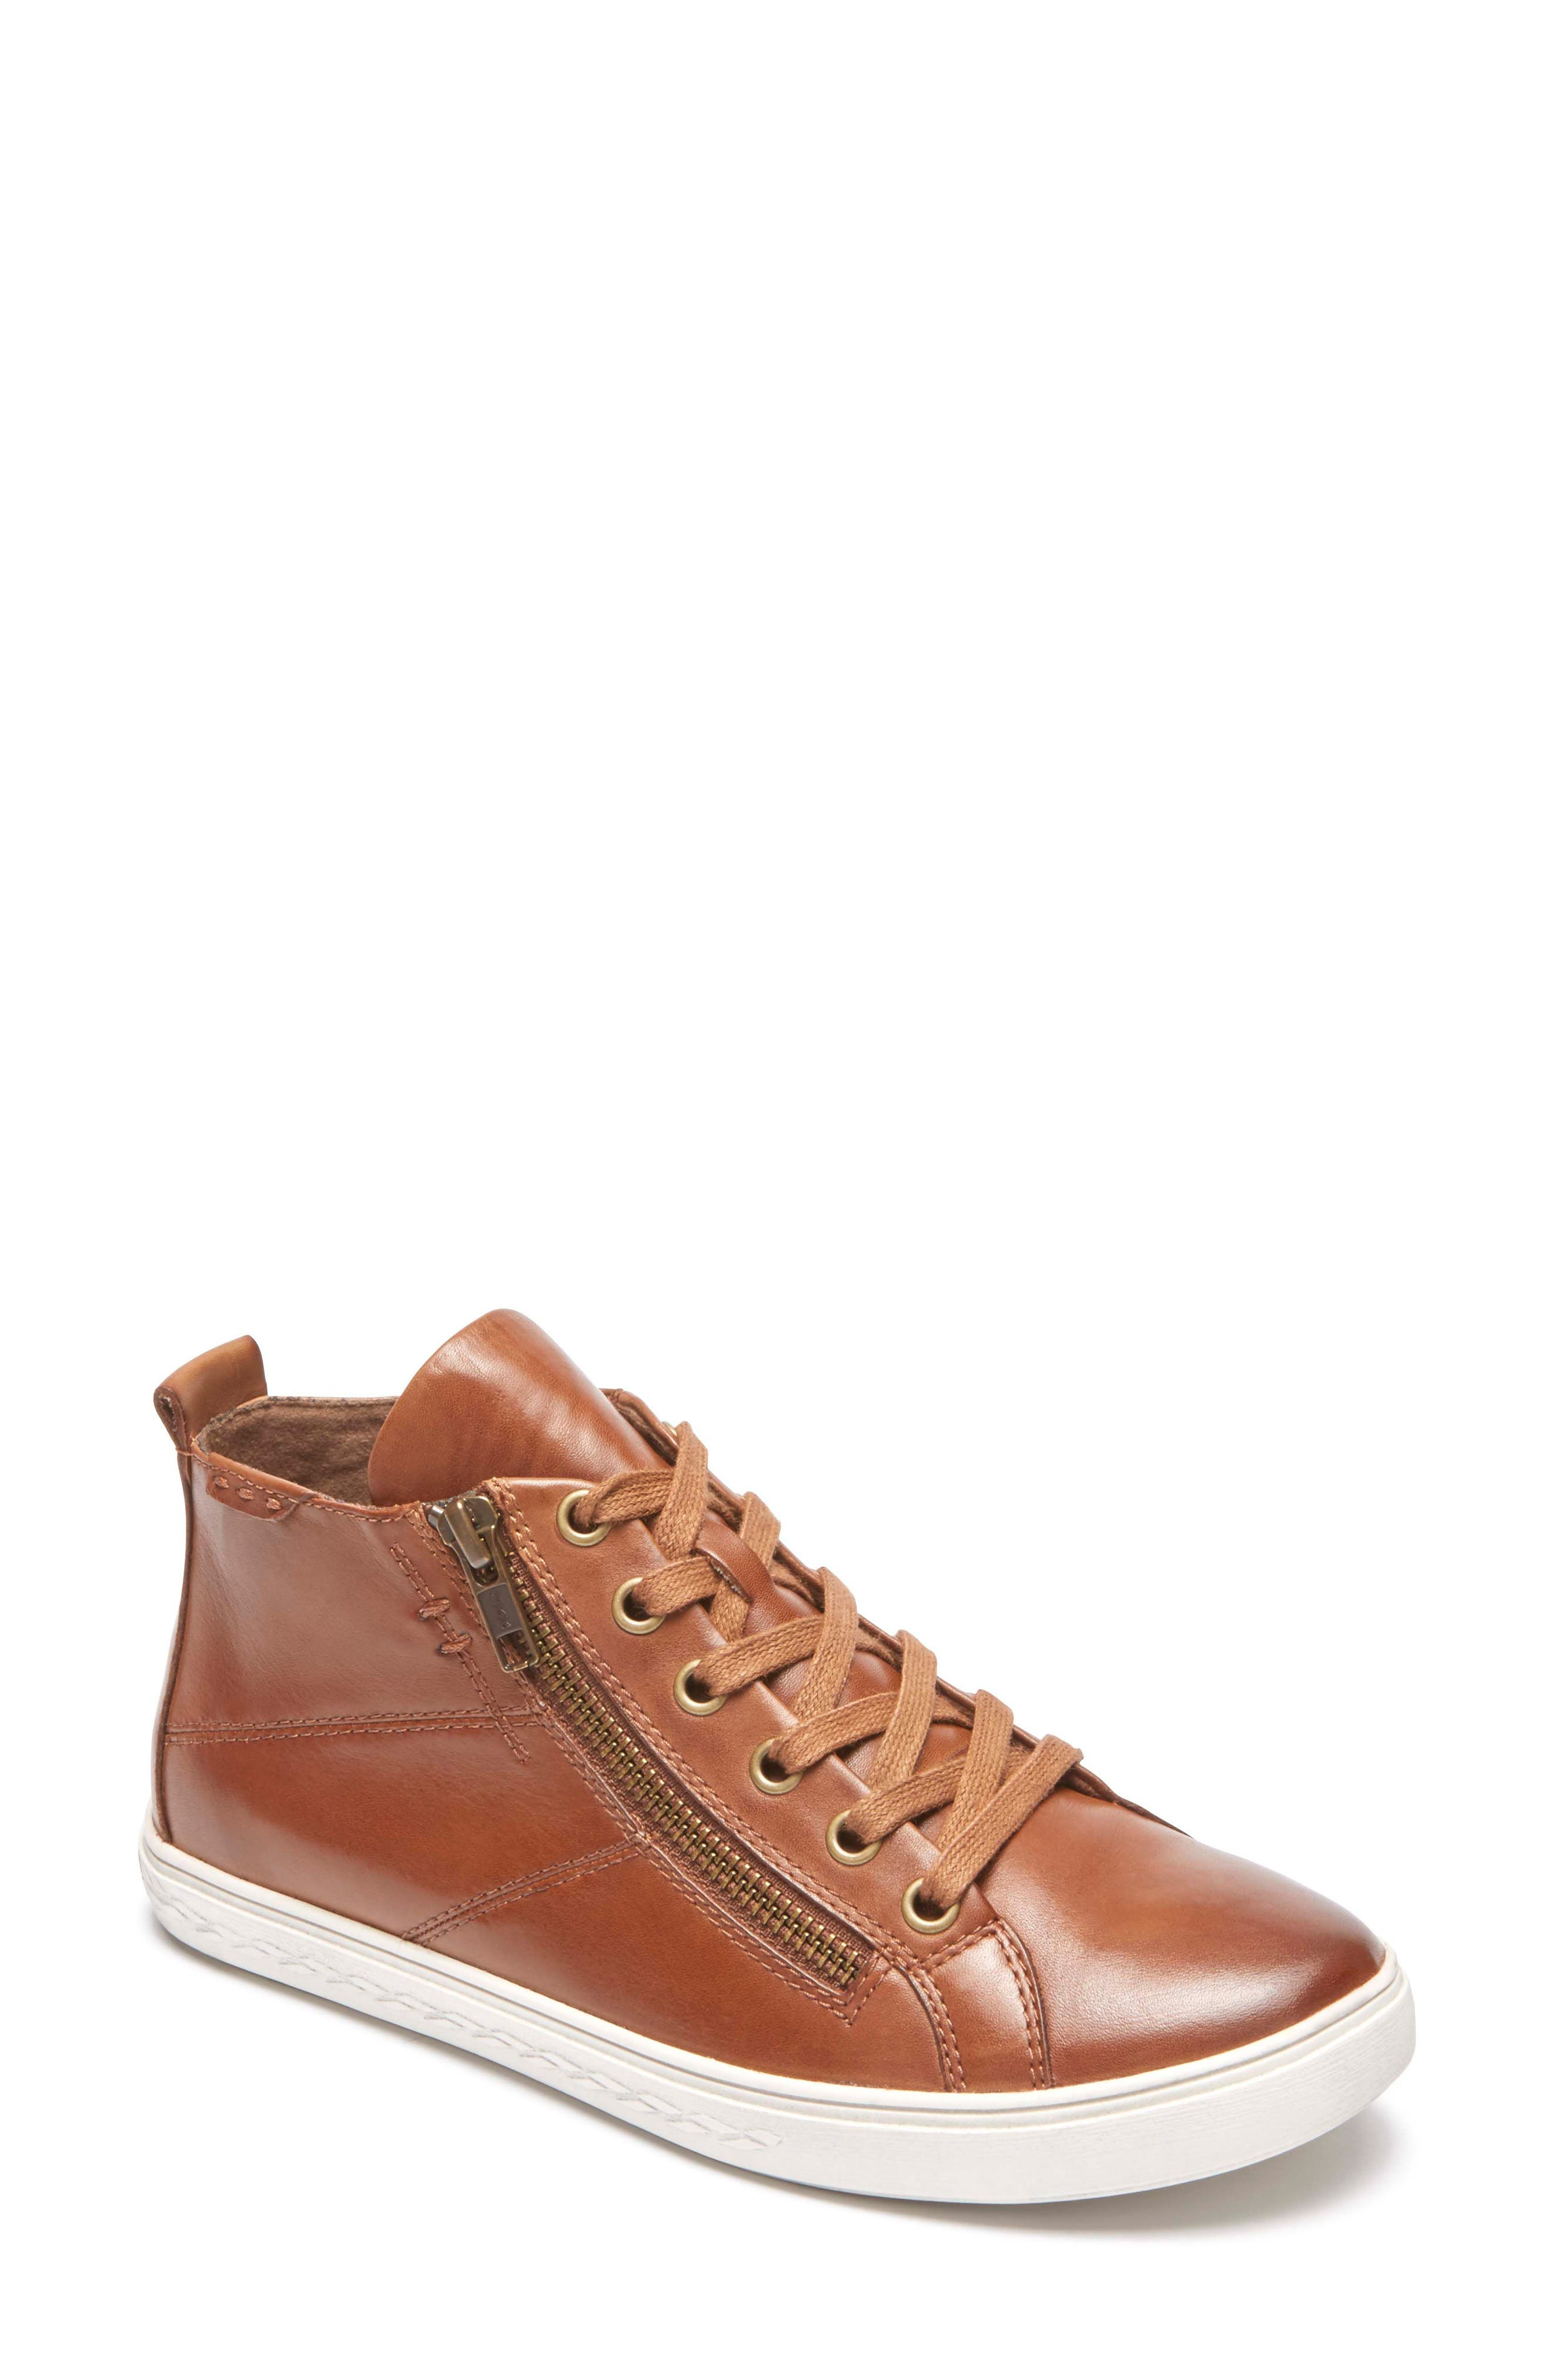 Alternate Image 1 Selected - Rockport Cobb Hill Willa High Top Sneaker (Women)